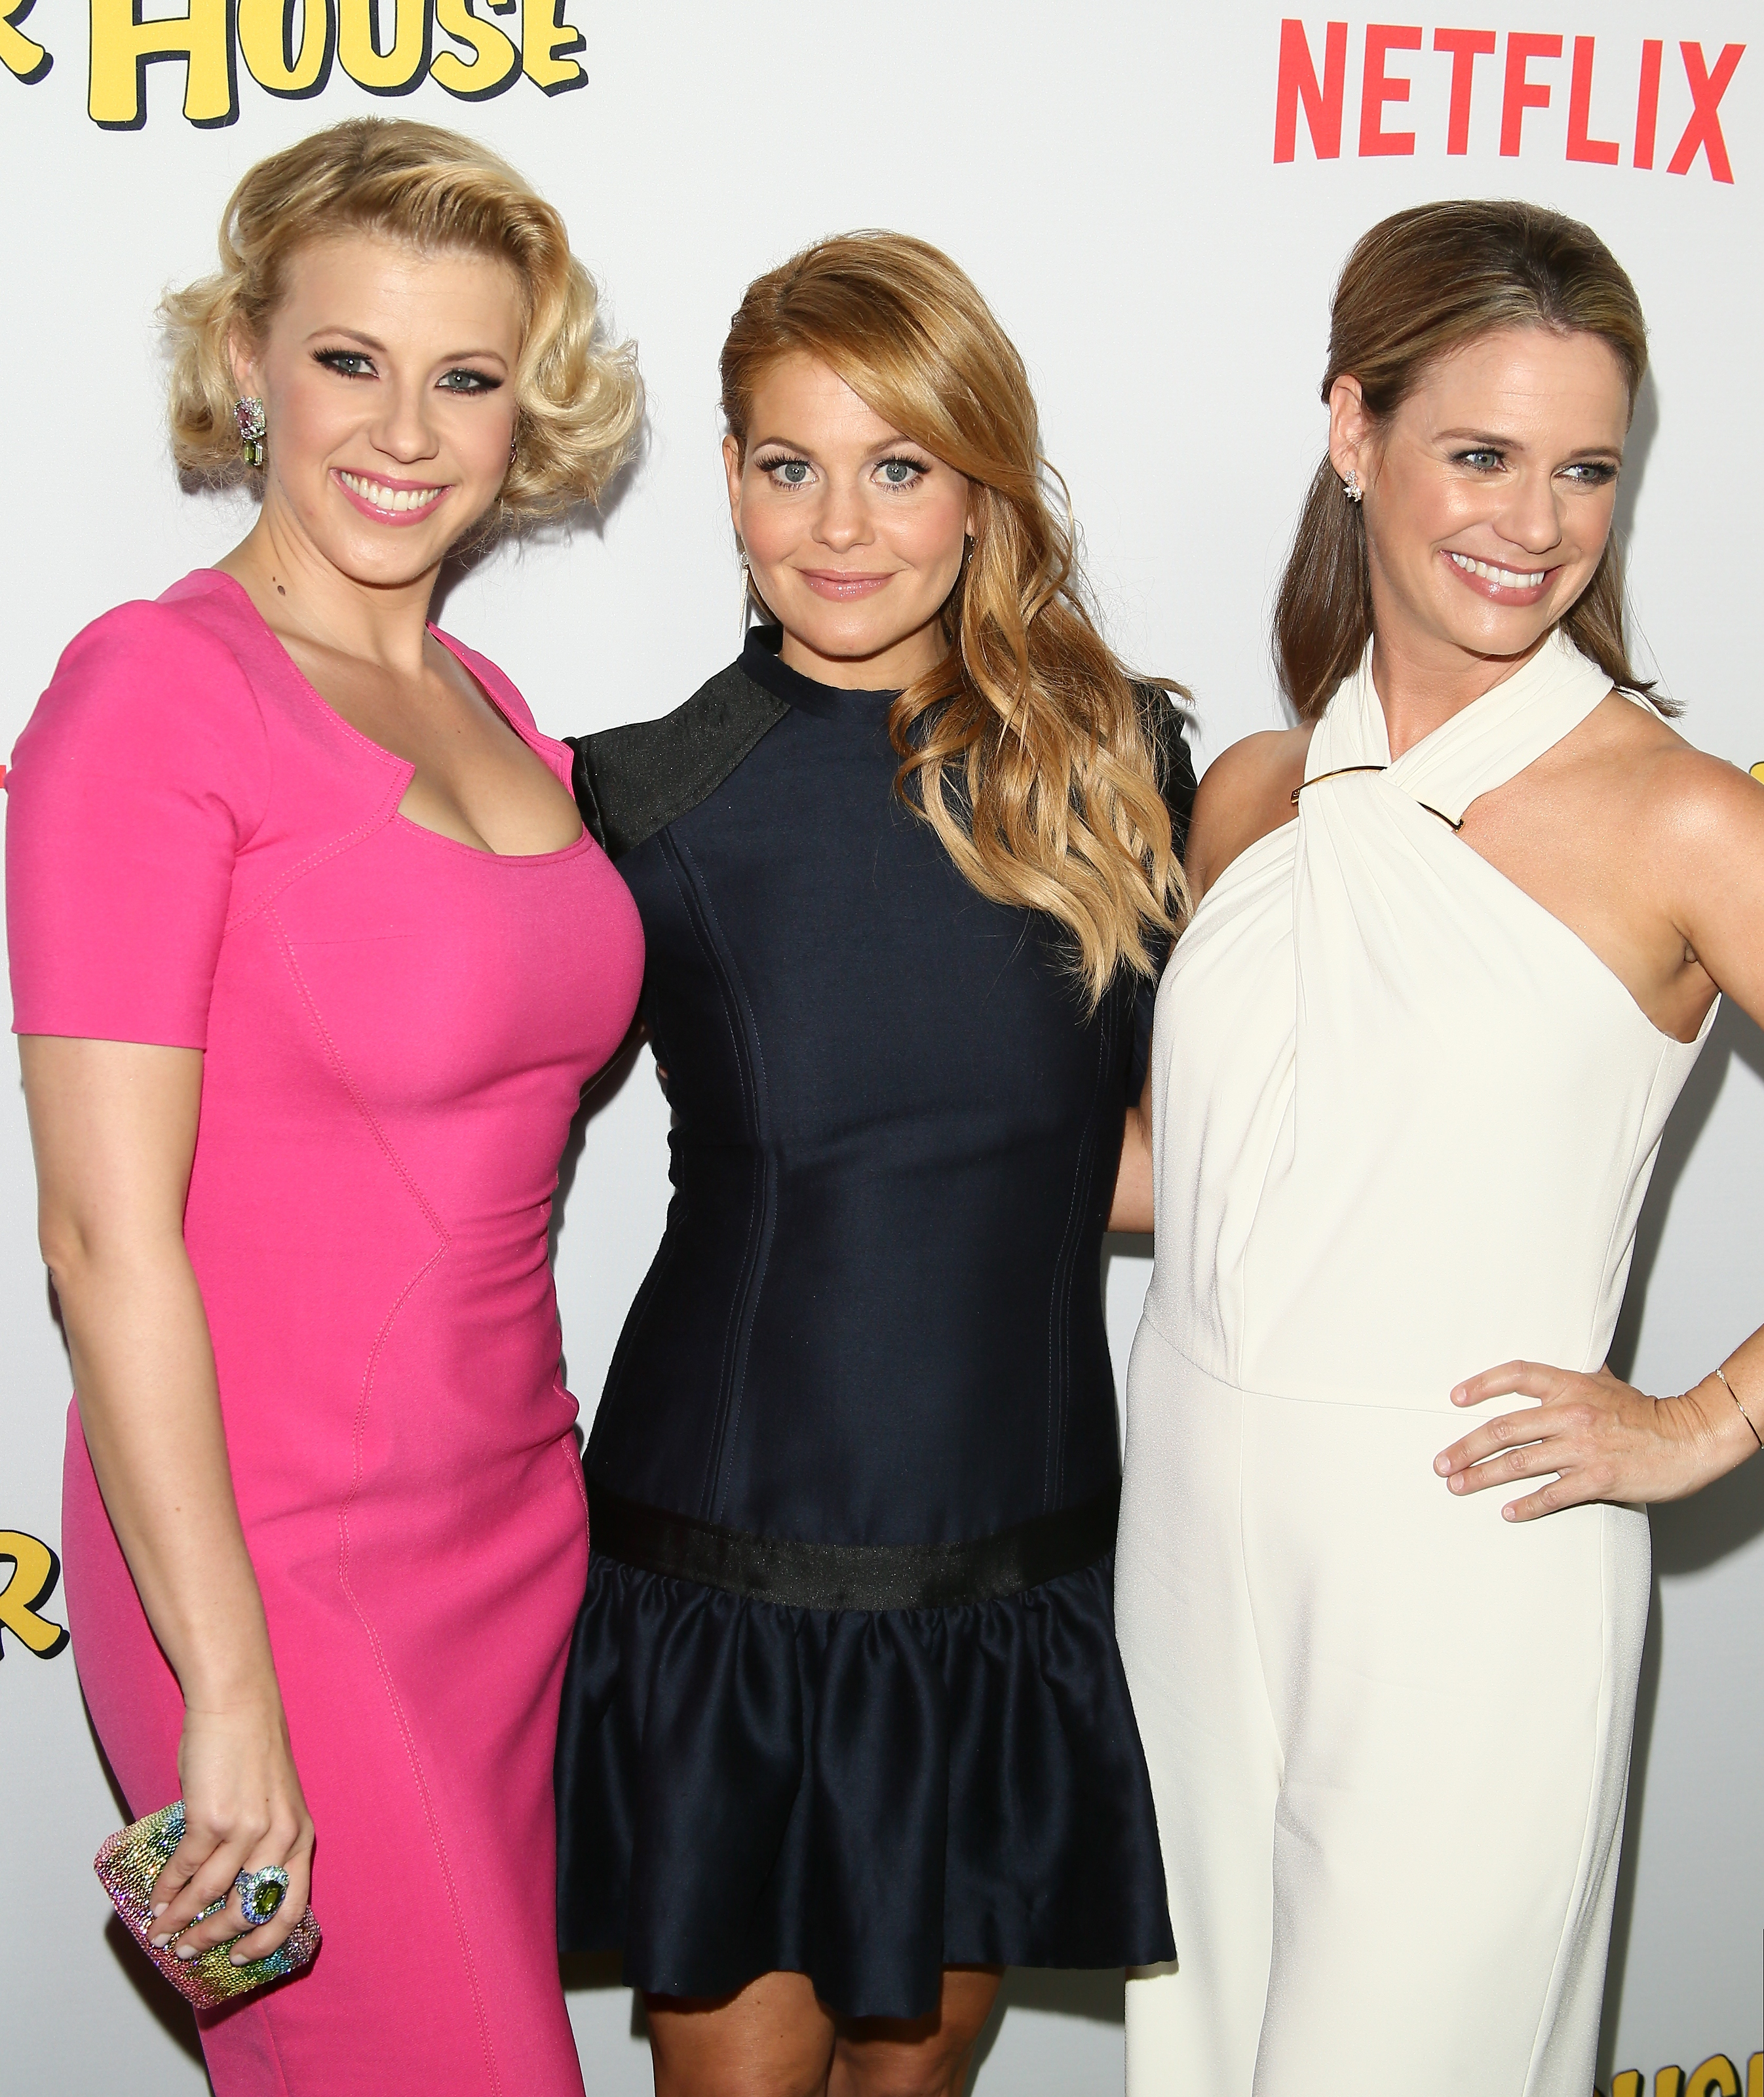 Candace Cameron-Bure, Jodie Sweetin and Andrea Barber attend the premiere of Netflix's 'Fuller House' on February 16, 2016 in Los Angeles, California.